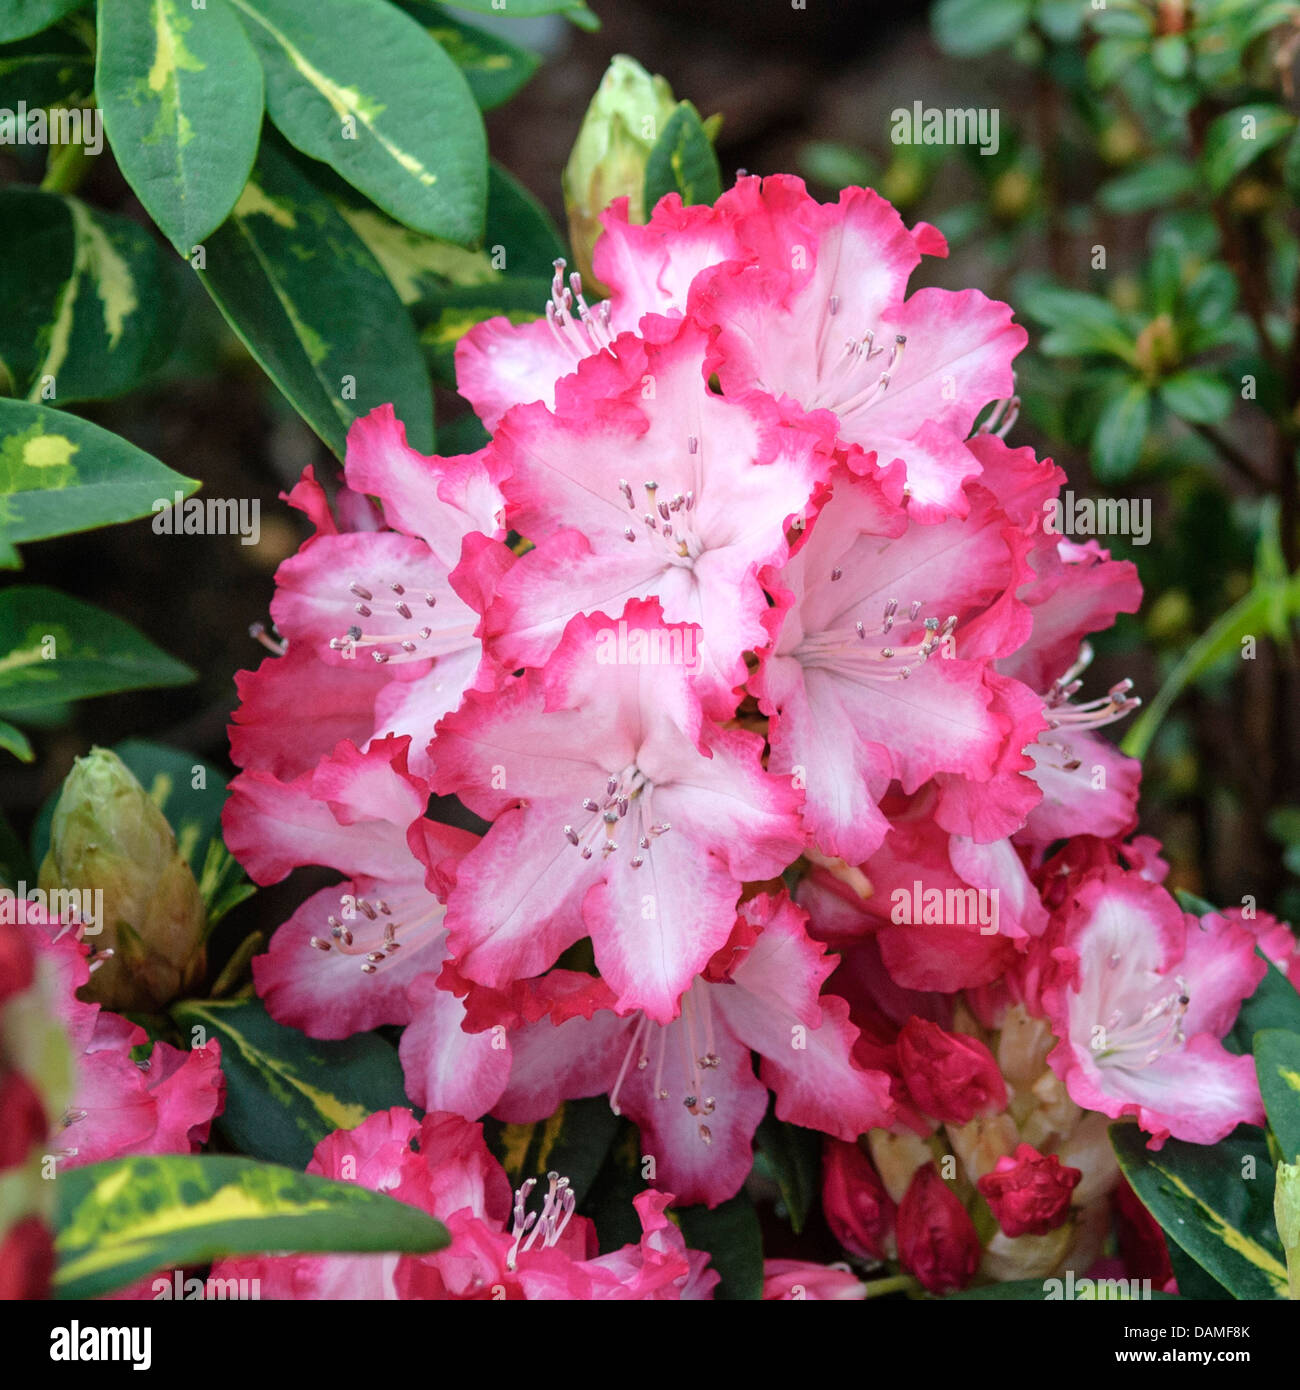 rhododendron (Rhododendron 'President Roosevelt', Rhododendron President Roosevelt), cultivar President - Stock Image